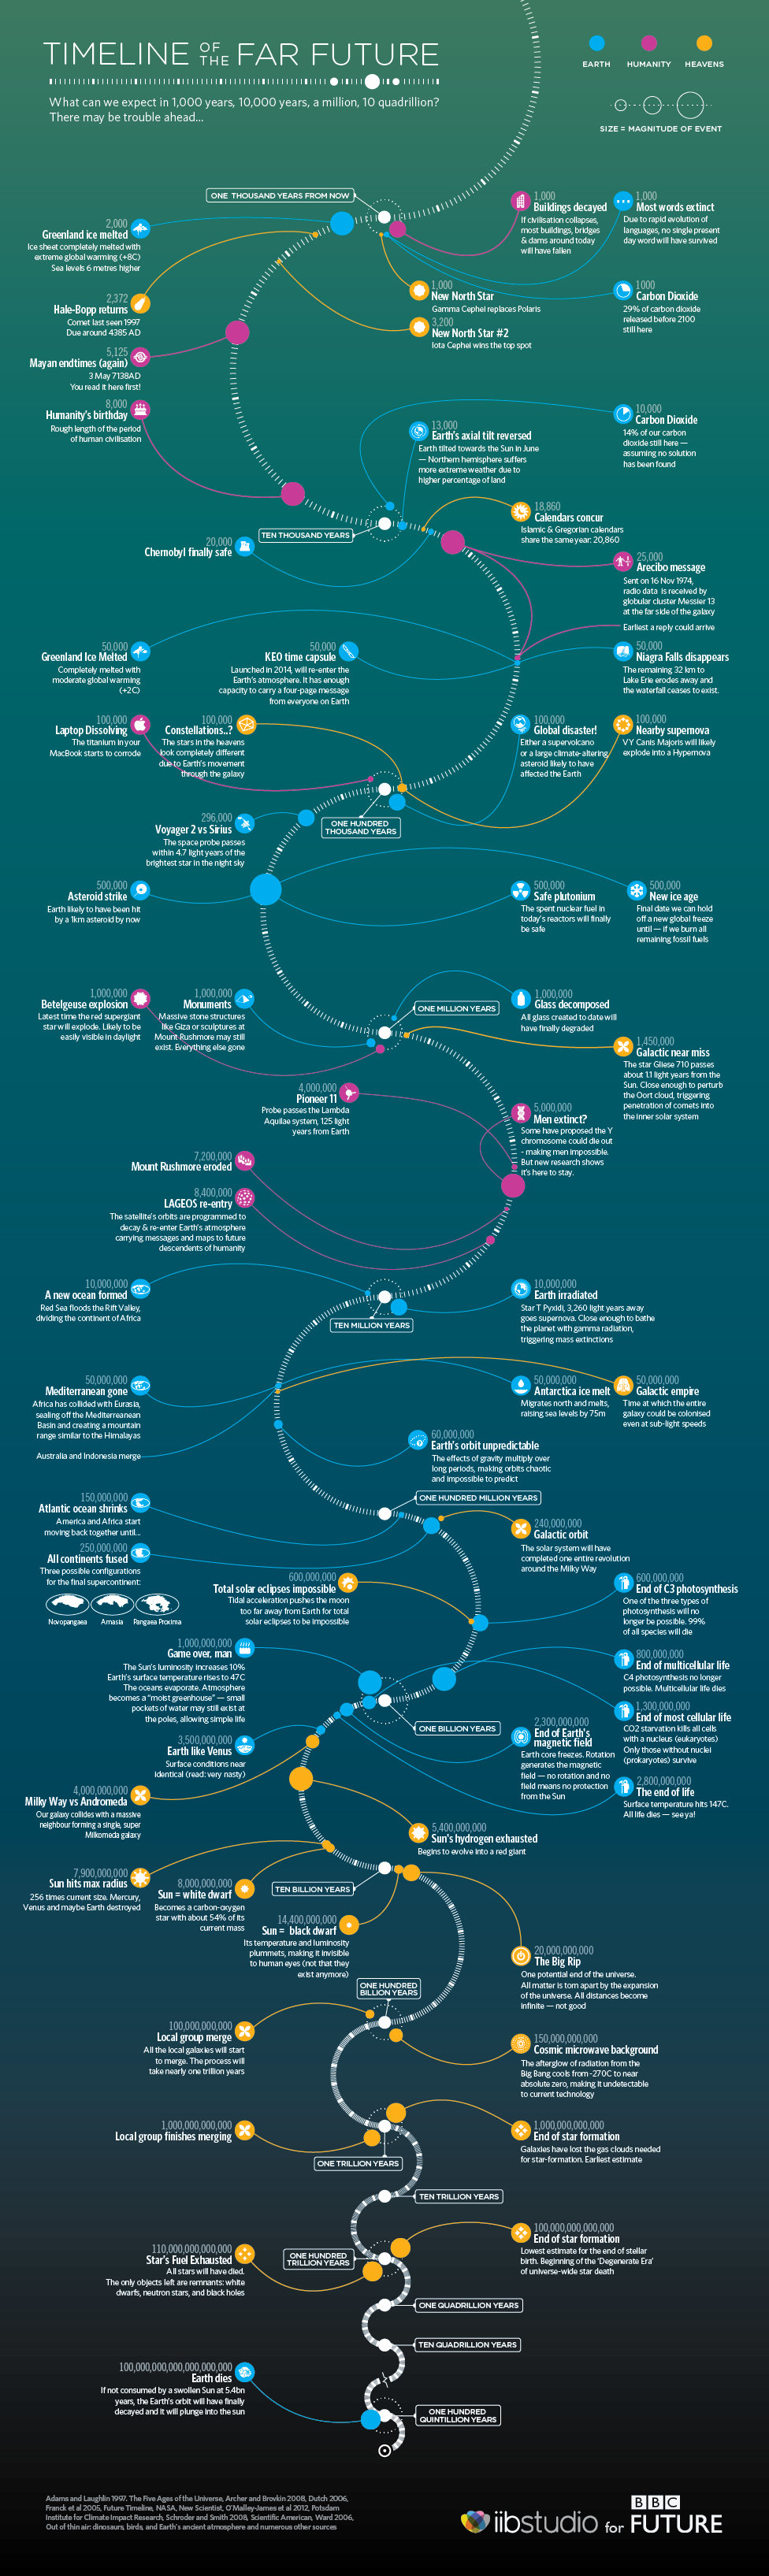 From http://www.bbc.com/future/story/20140105-timeline-of-the-far-future